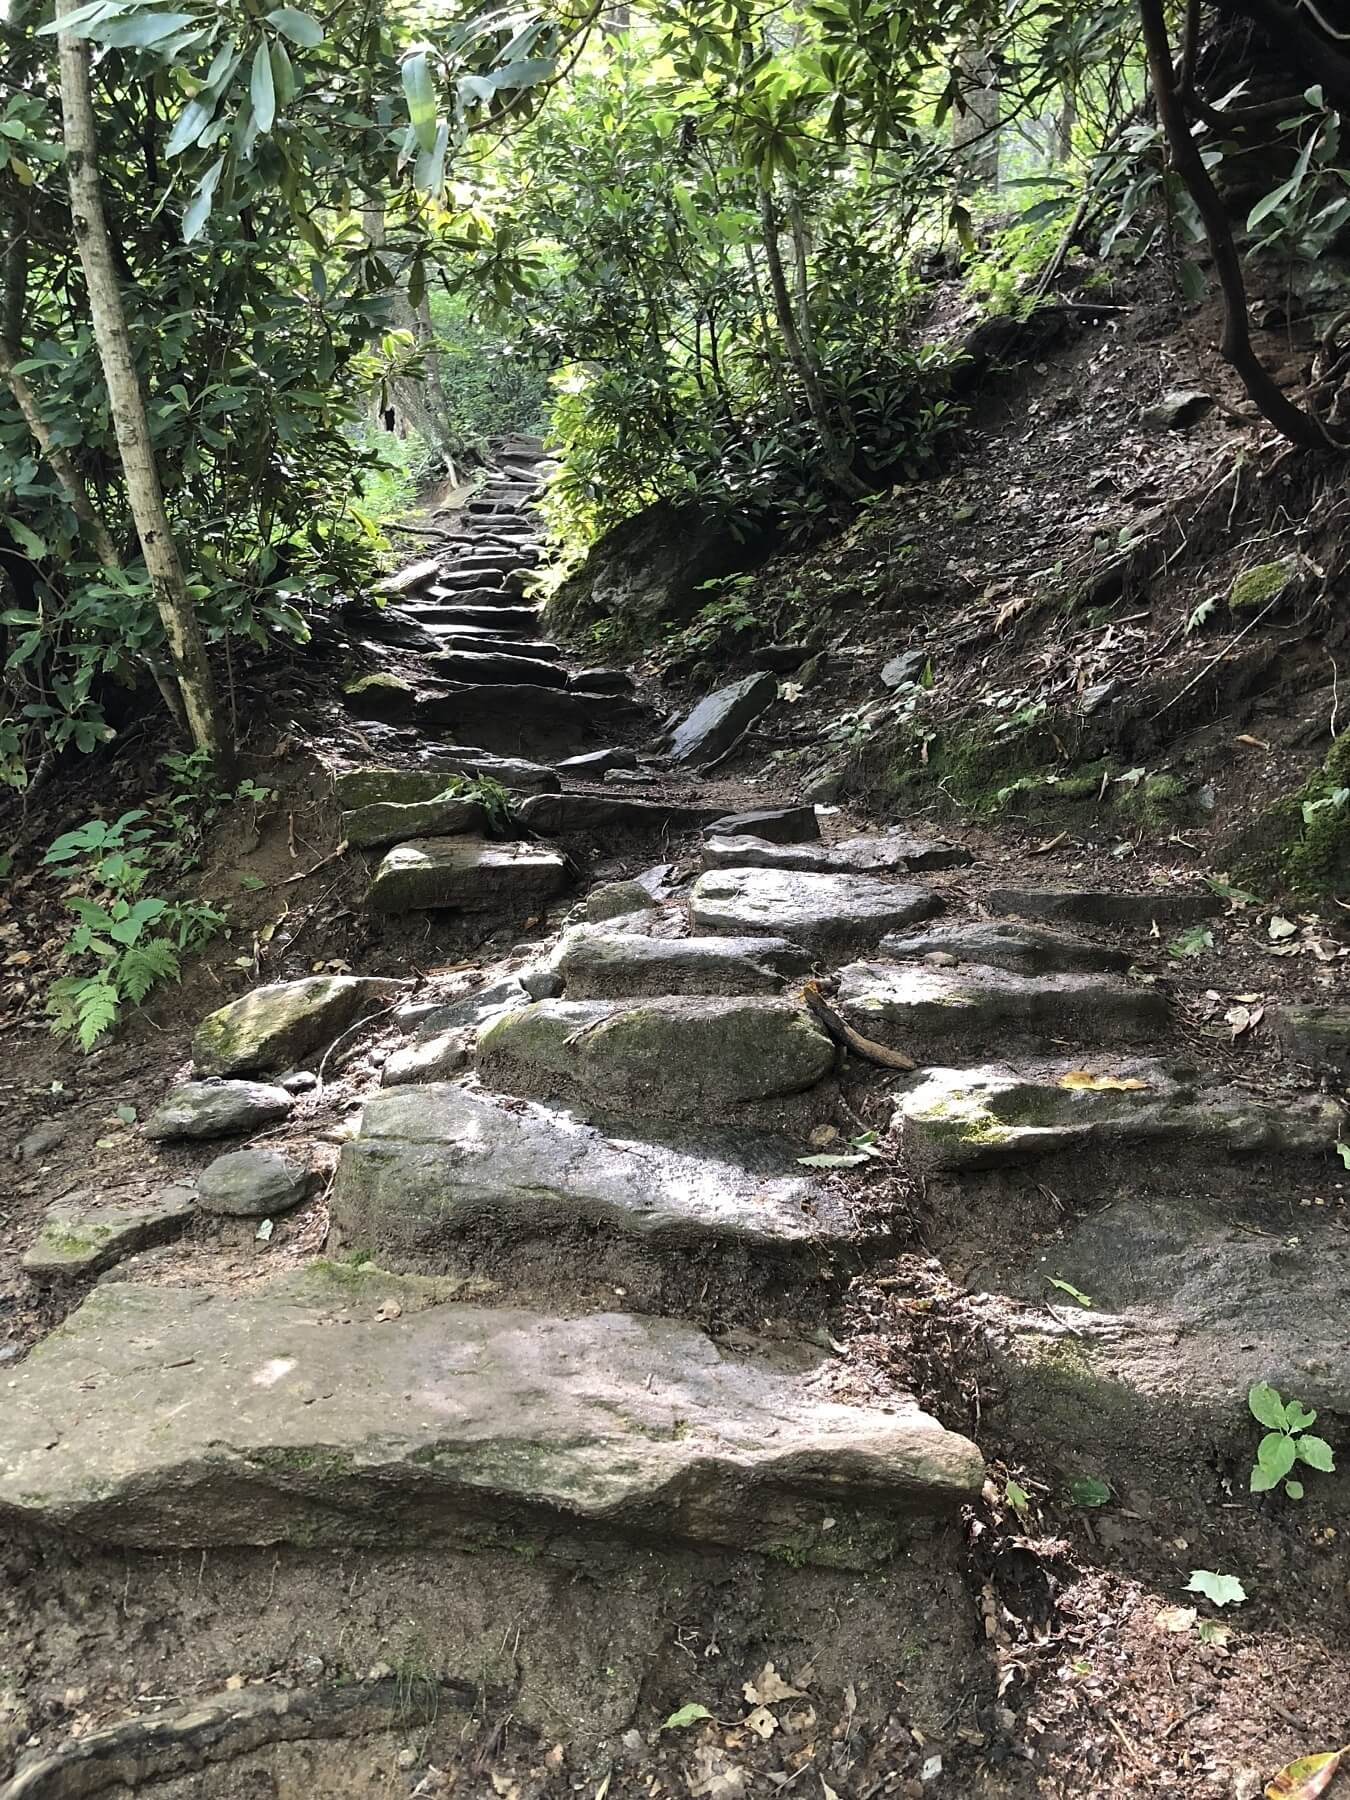 The trailhead to Whiteside Mountain is a beautiful stack of natural stairs that lead to some amazing panoramic views of the North Carolina mountains.